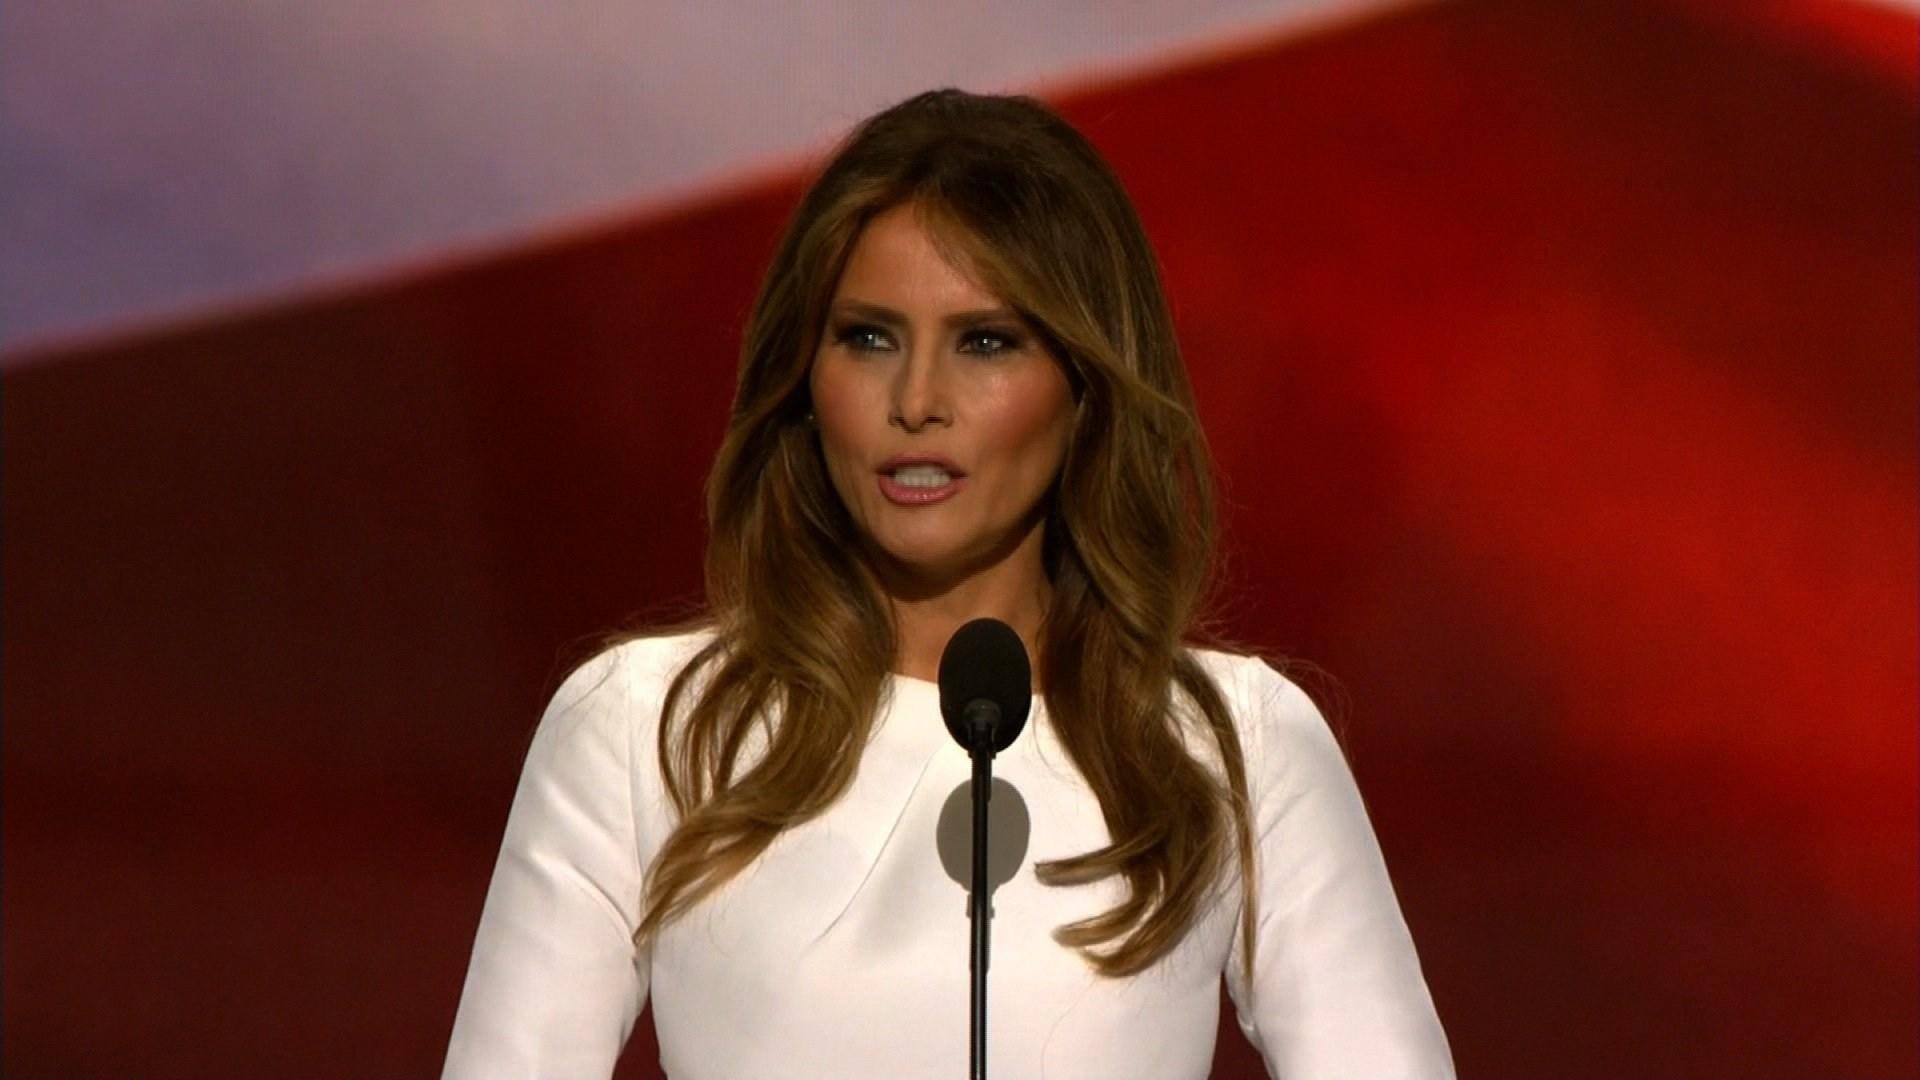 Nude photos of Melania Trump suggest that she may have